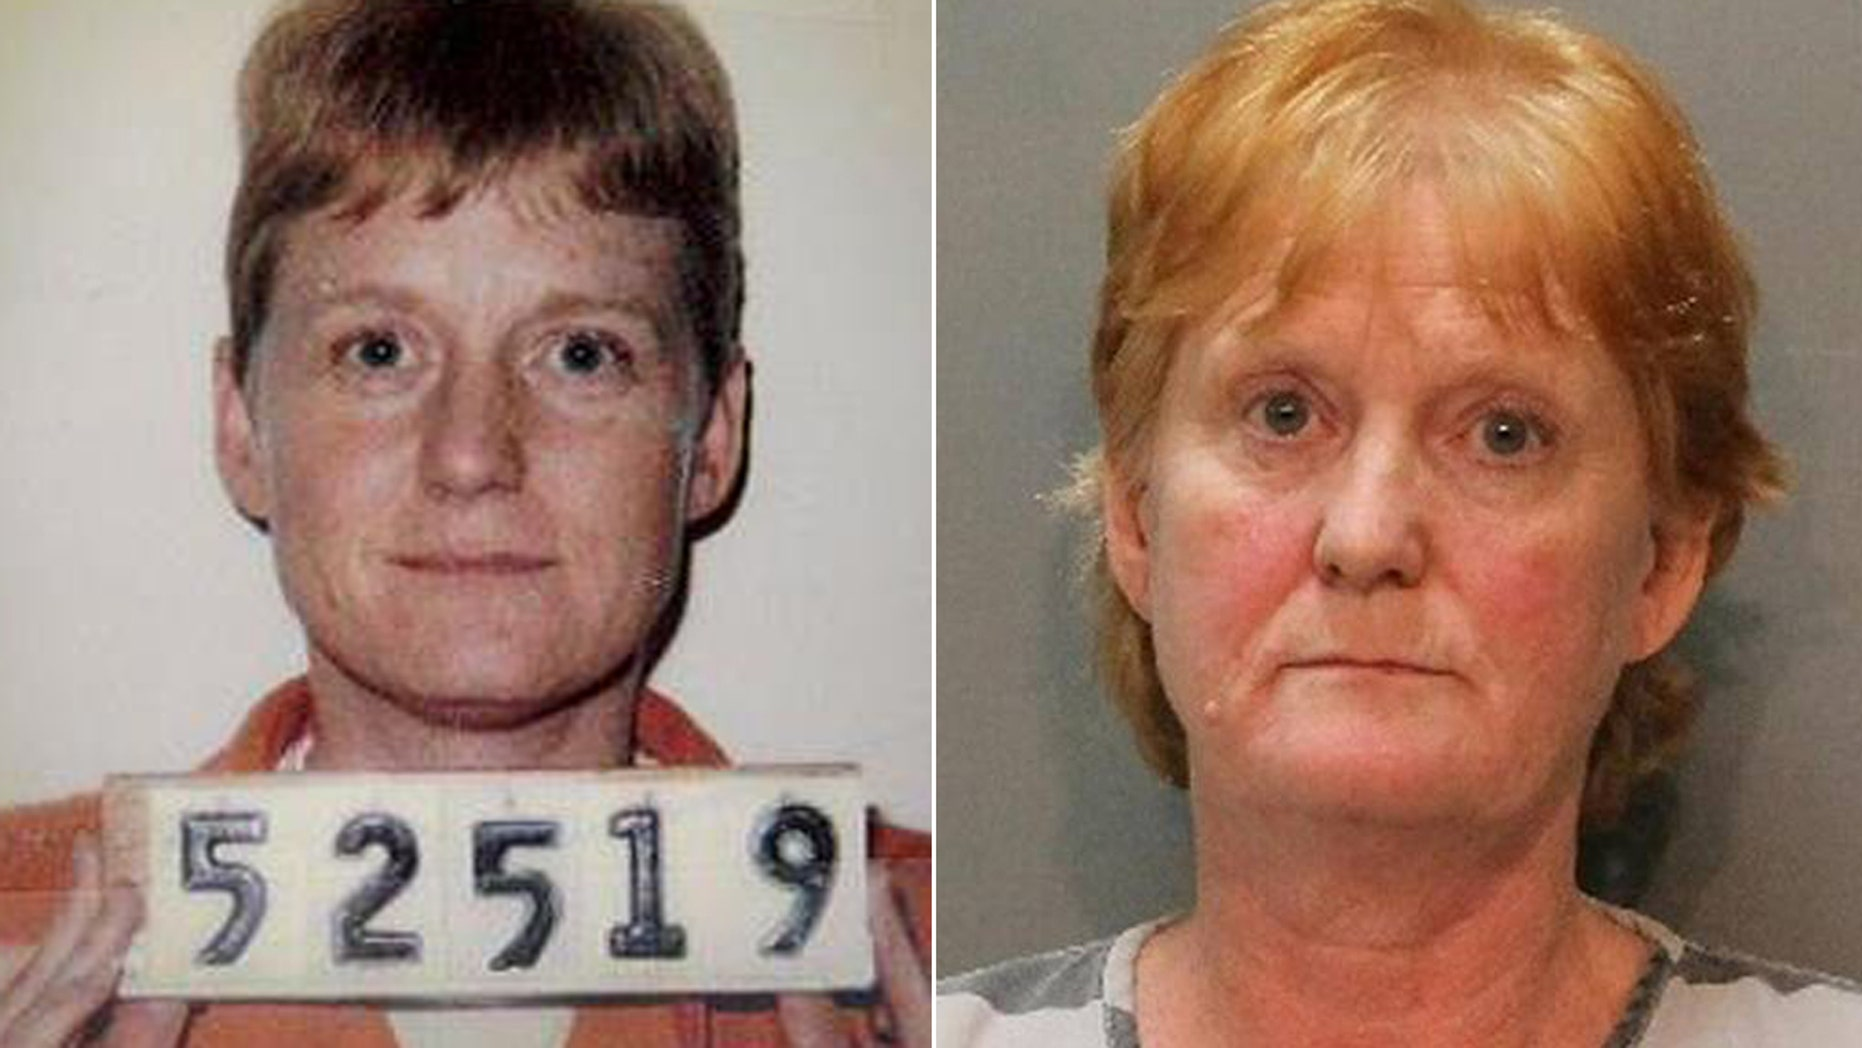 Rhonda L. Blake, 57, who escaped nearly two decades ago, was arrested in South Dakota using a fake name.